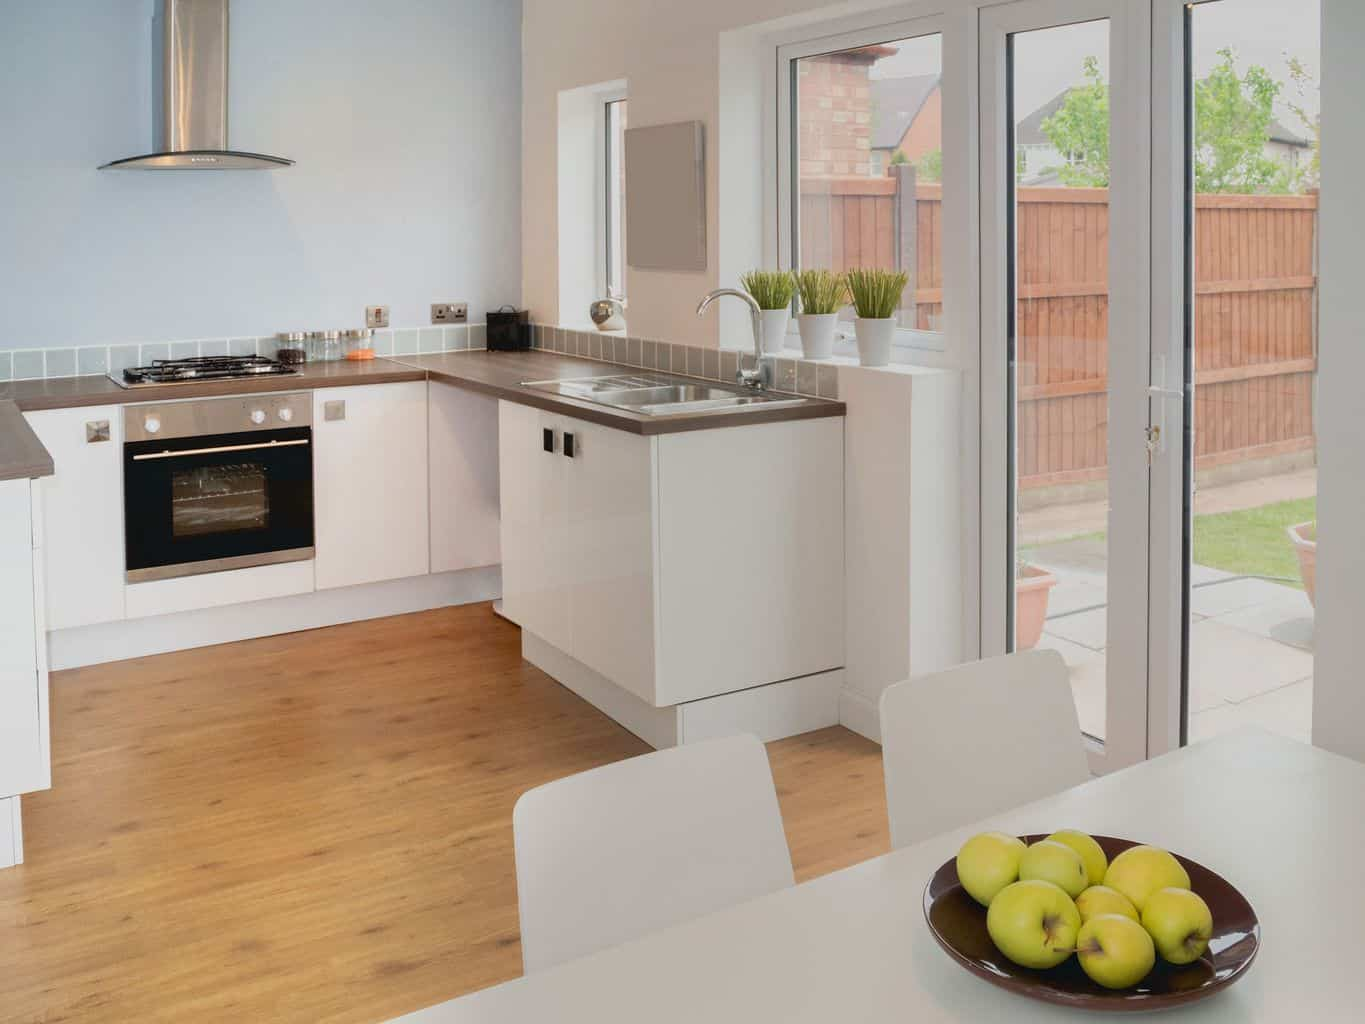 choose laminate flooring kitchen laminate flooring in kitchen Though you can t sand laminate like you could hardwood many people have trouble telling the difference between laminate wood and real hardwood